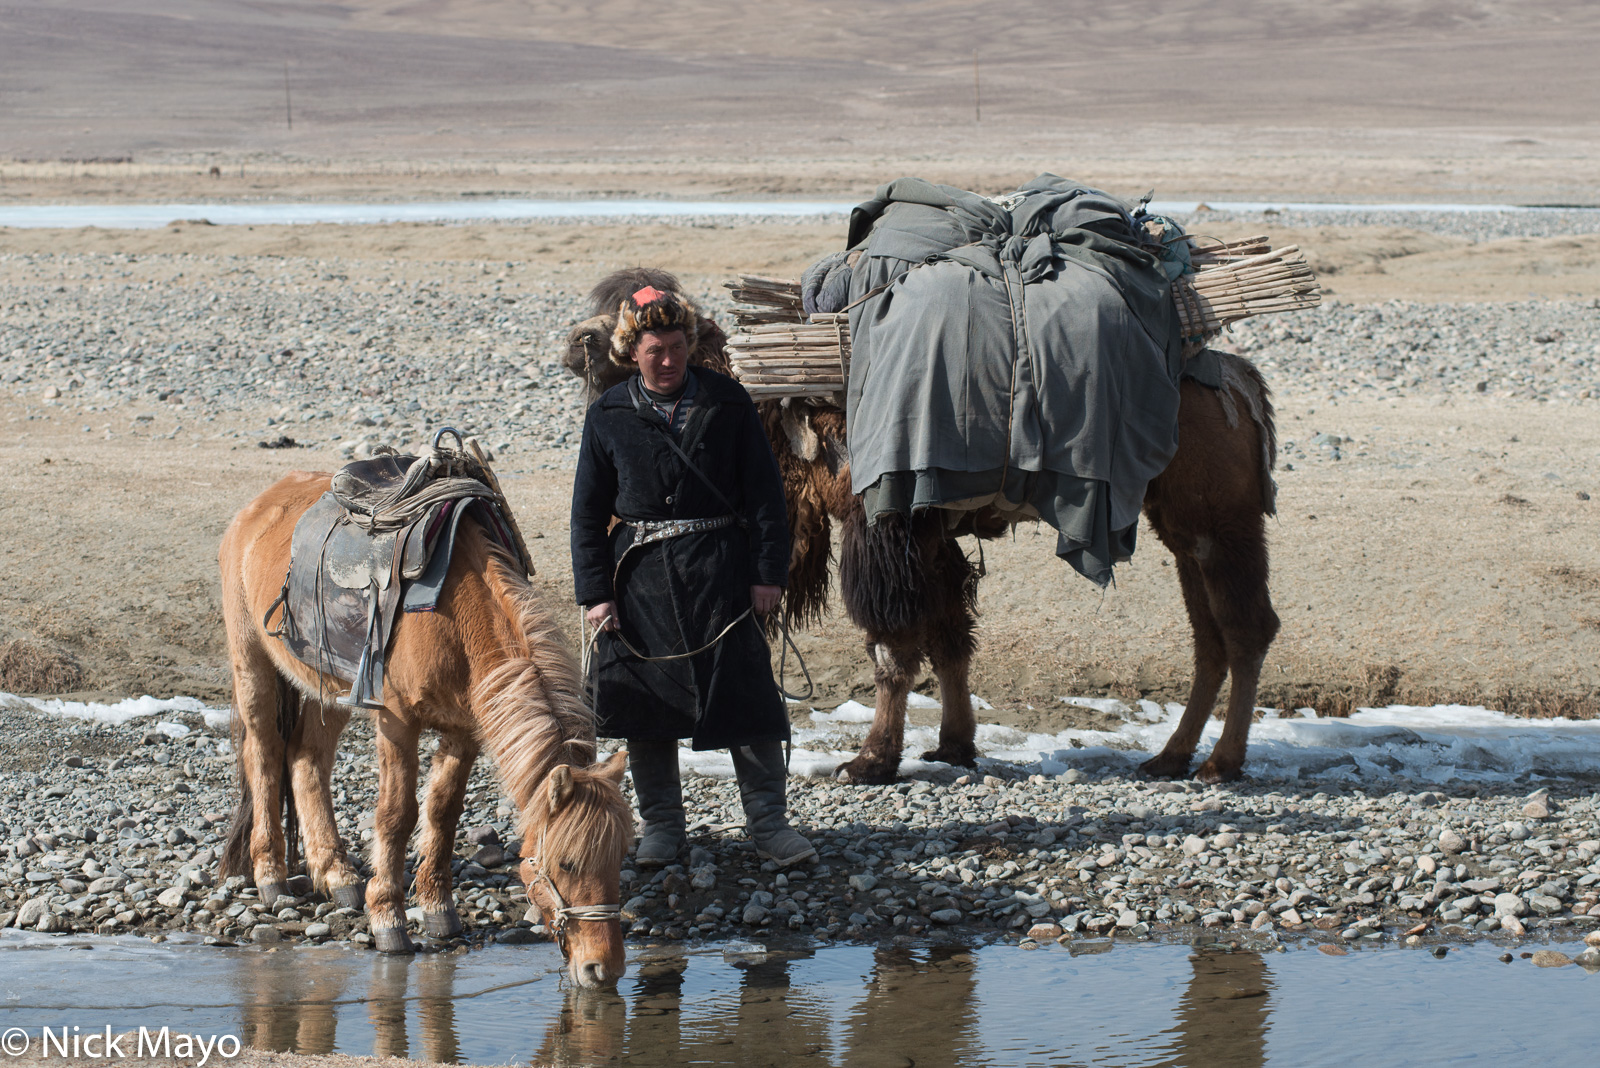 Bayan-Ölgii, Camel, Horse, Kazakh, Mongolia, Pack Animal, photo